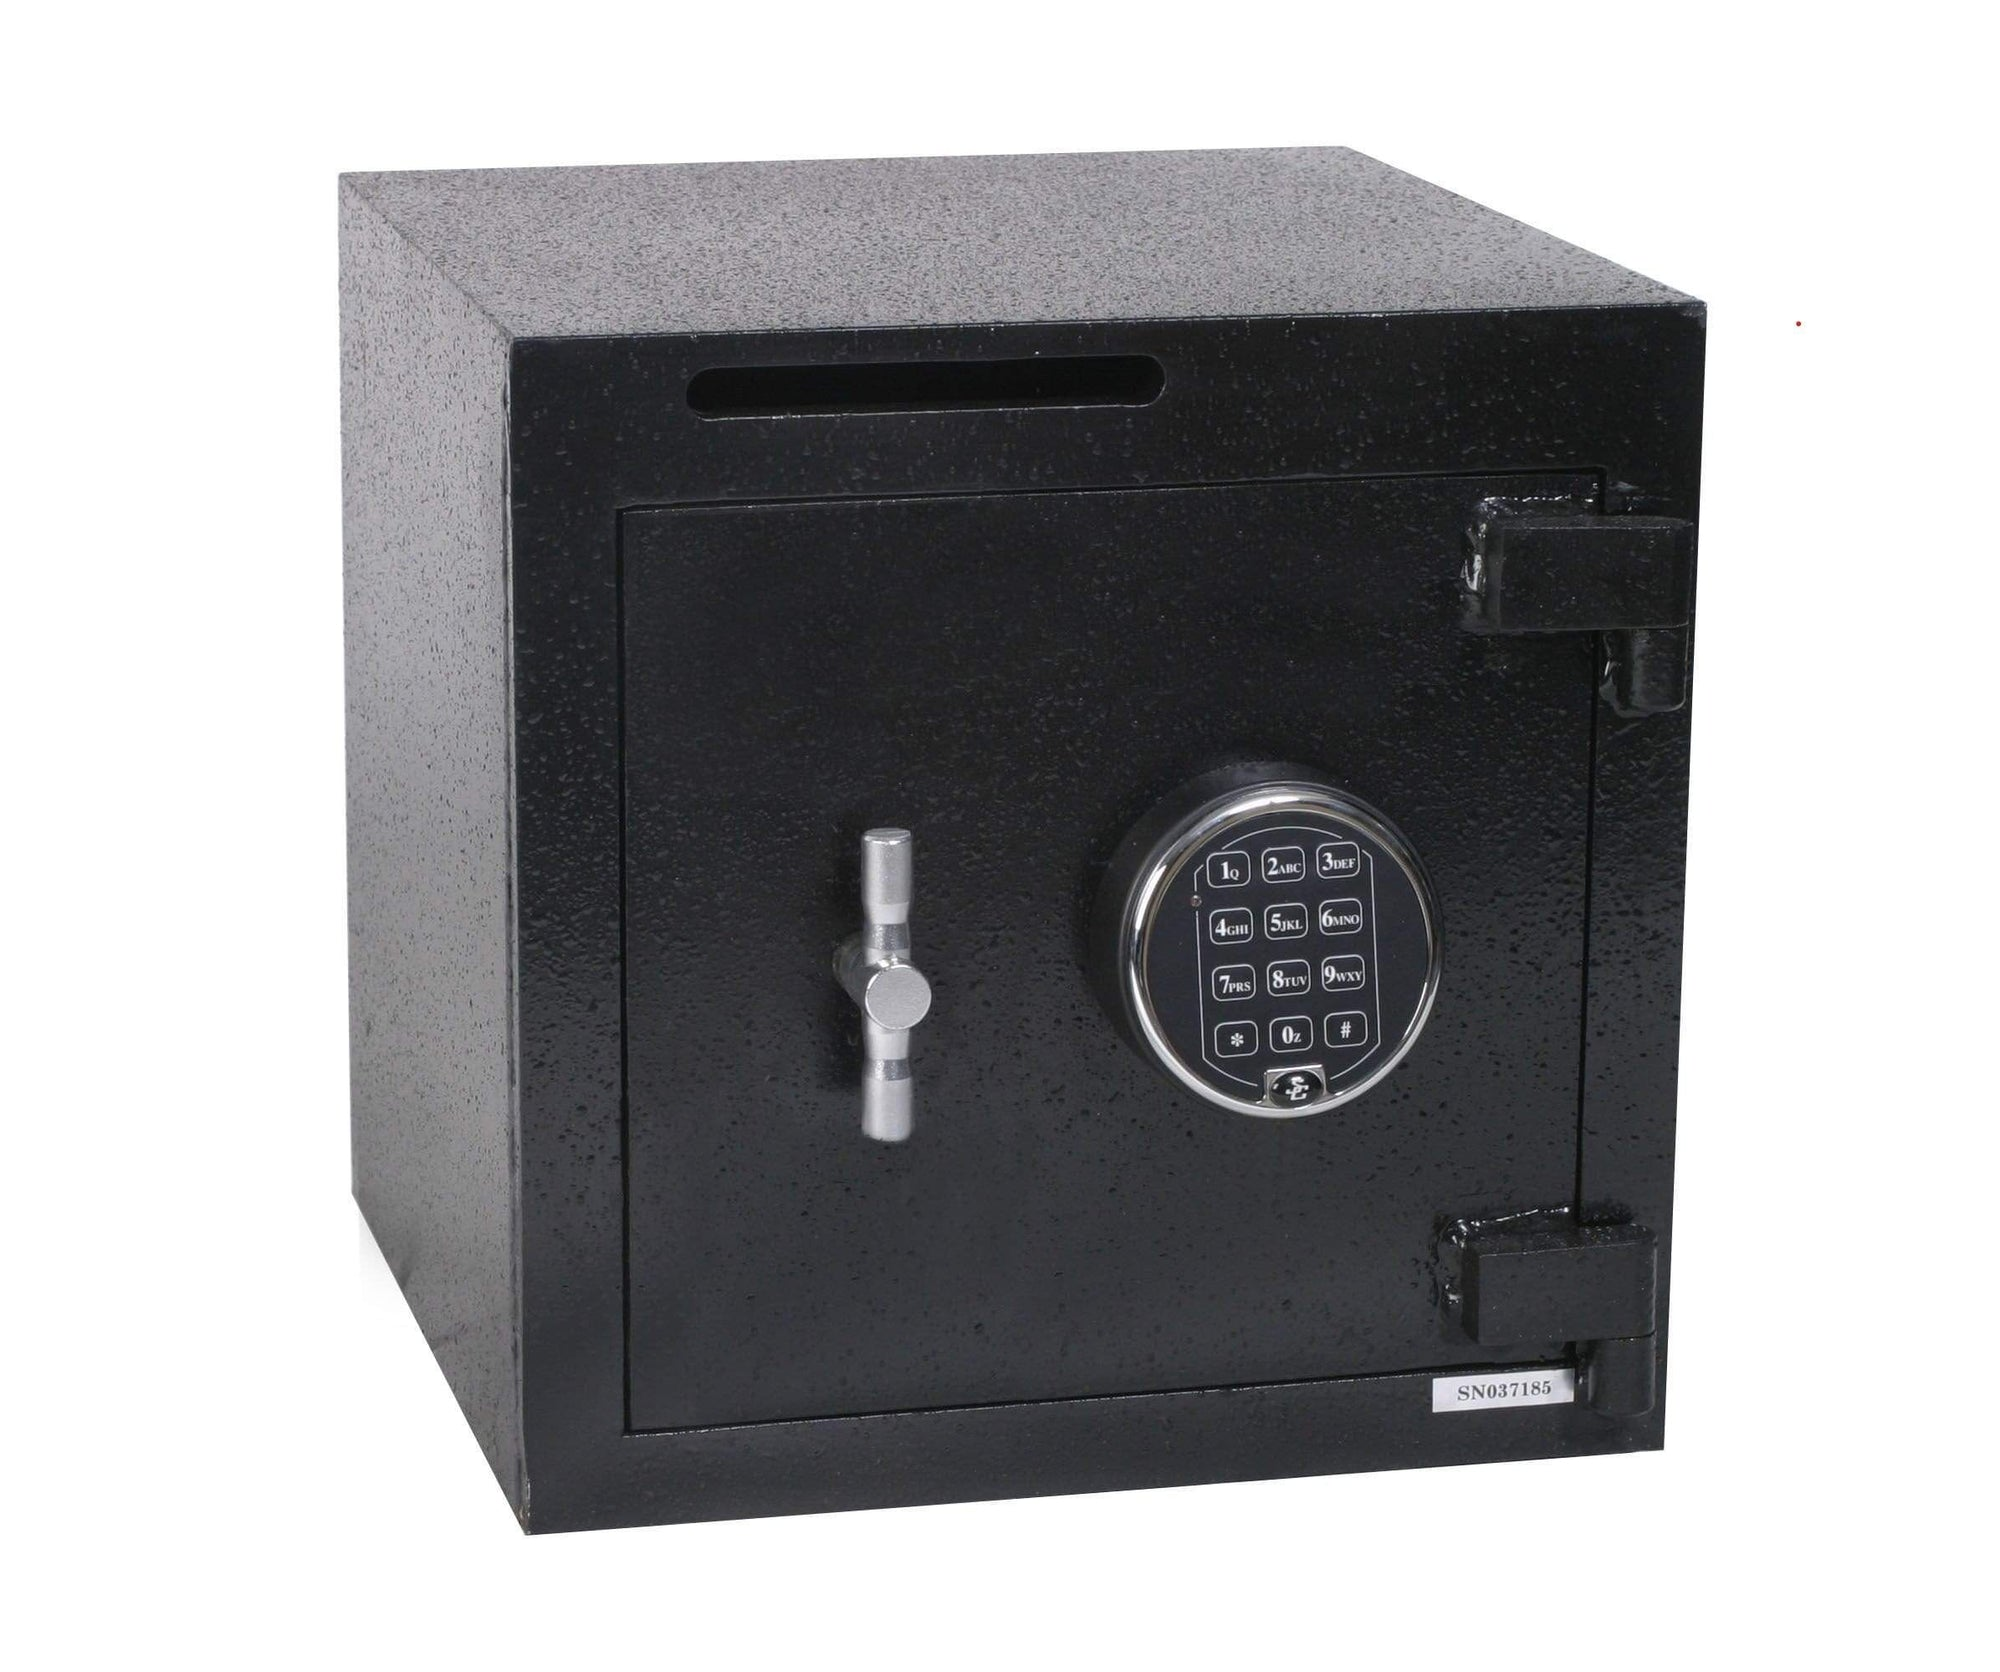 Fireking B1414S B-Rate Safes with Deposit Slots Armadillo Safe and Vault